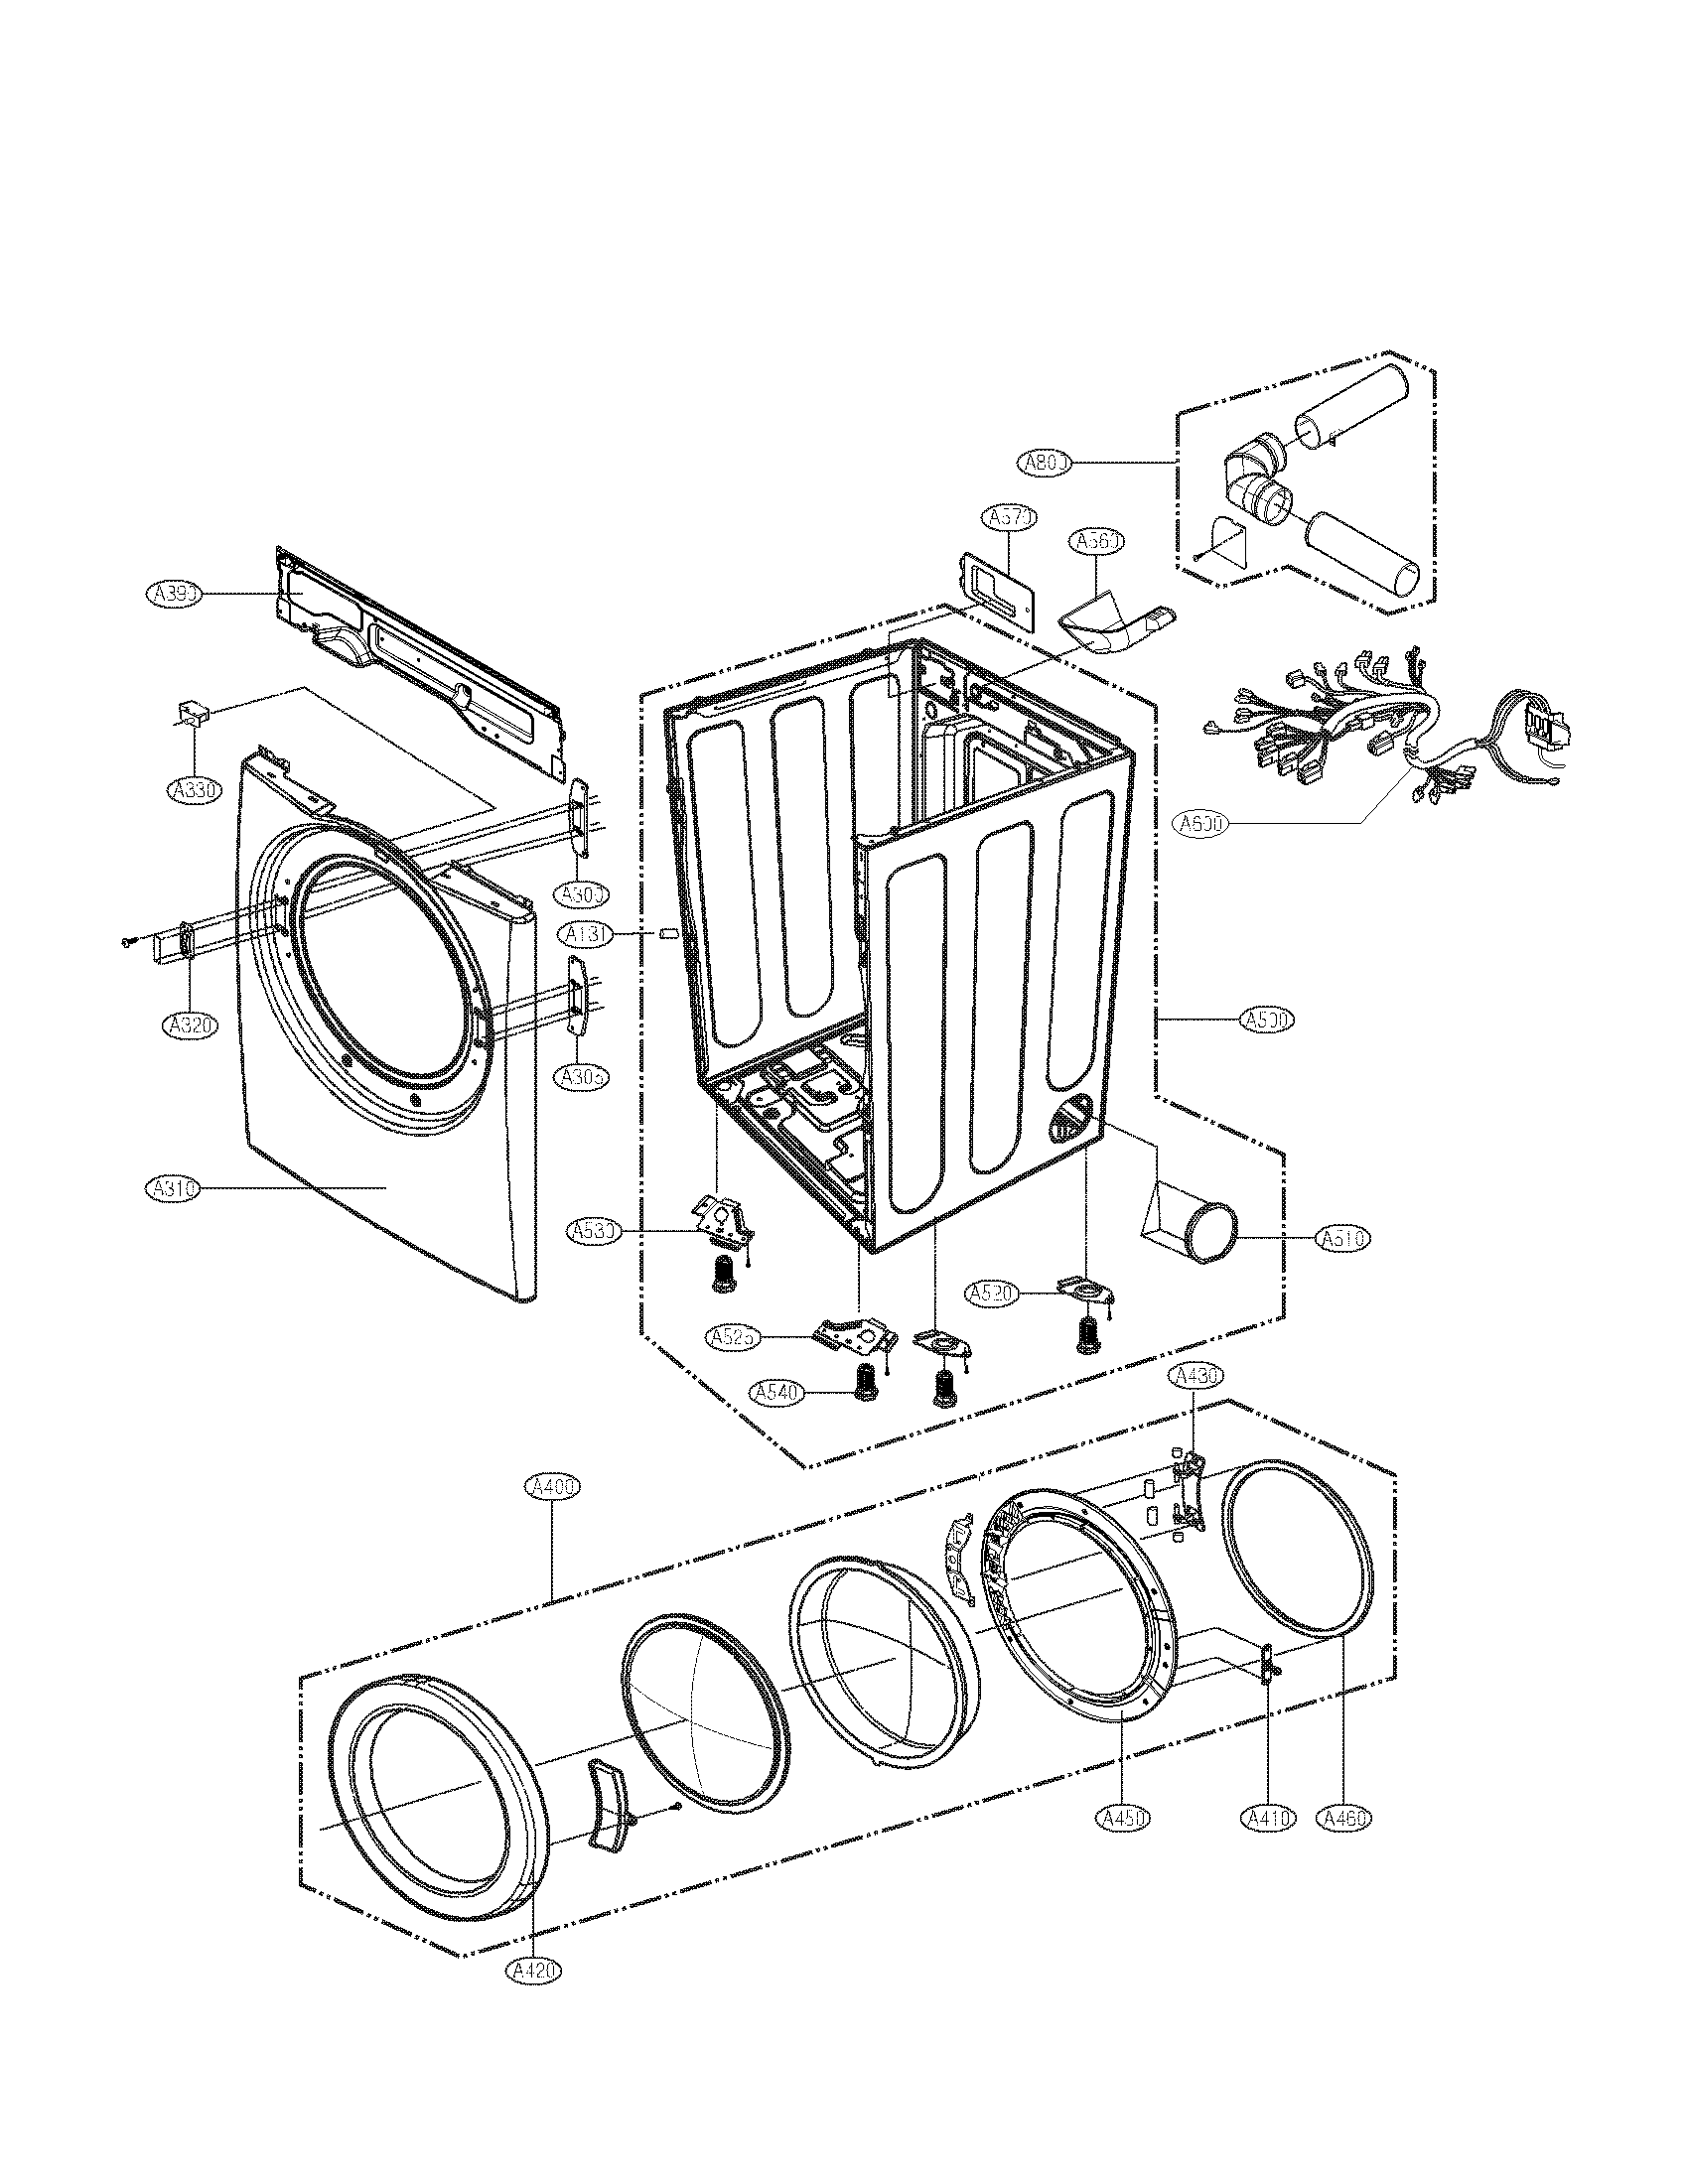 Lg model DLE2101W residential dryer genuine parts